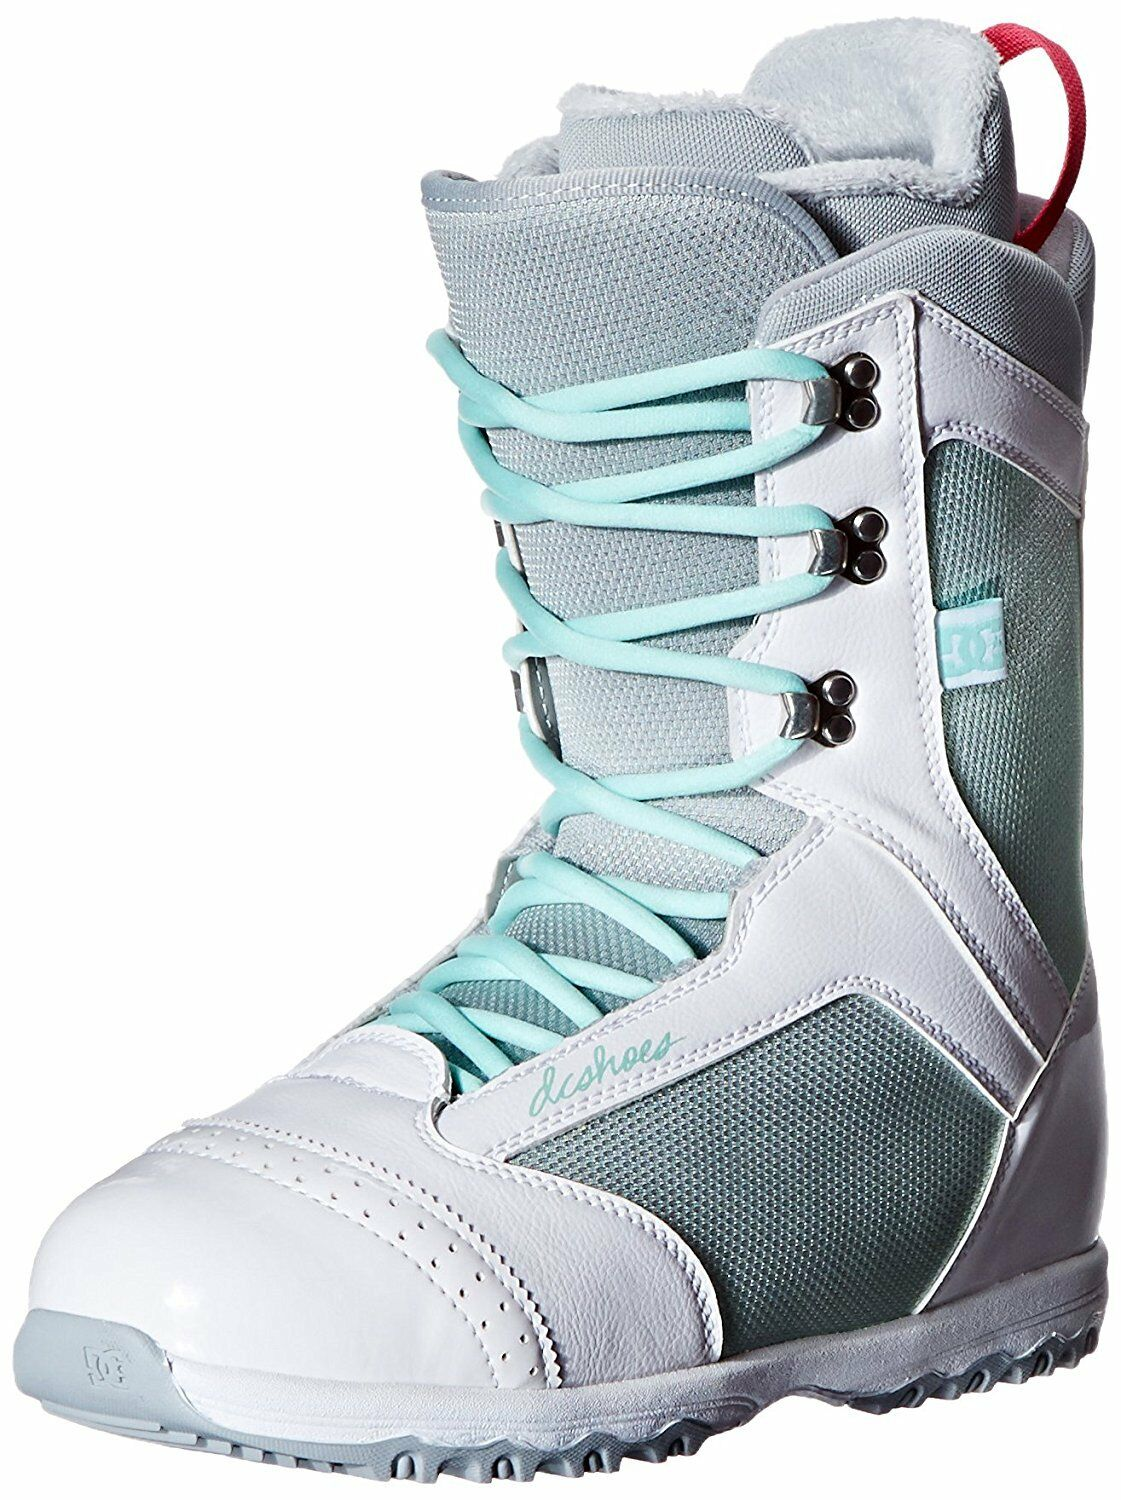 NEW DC Women's Karma 13 Snowboard Boot,White Grey,5 M US Snow Boots Lined